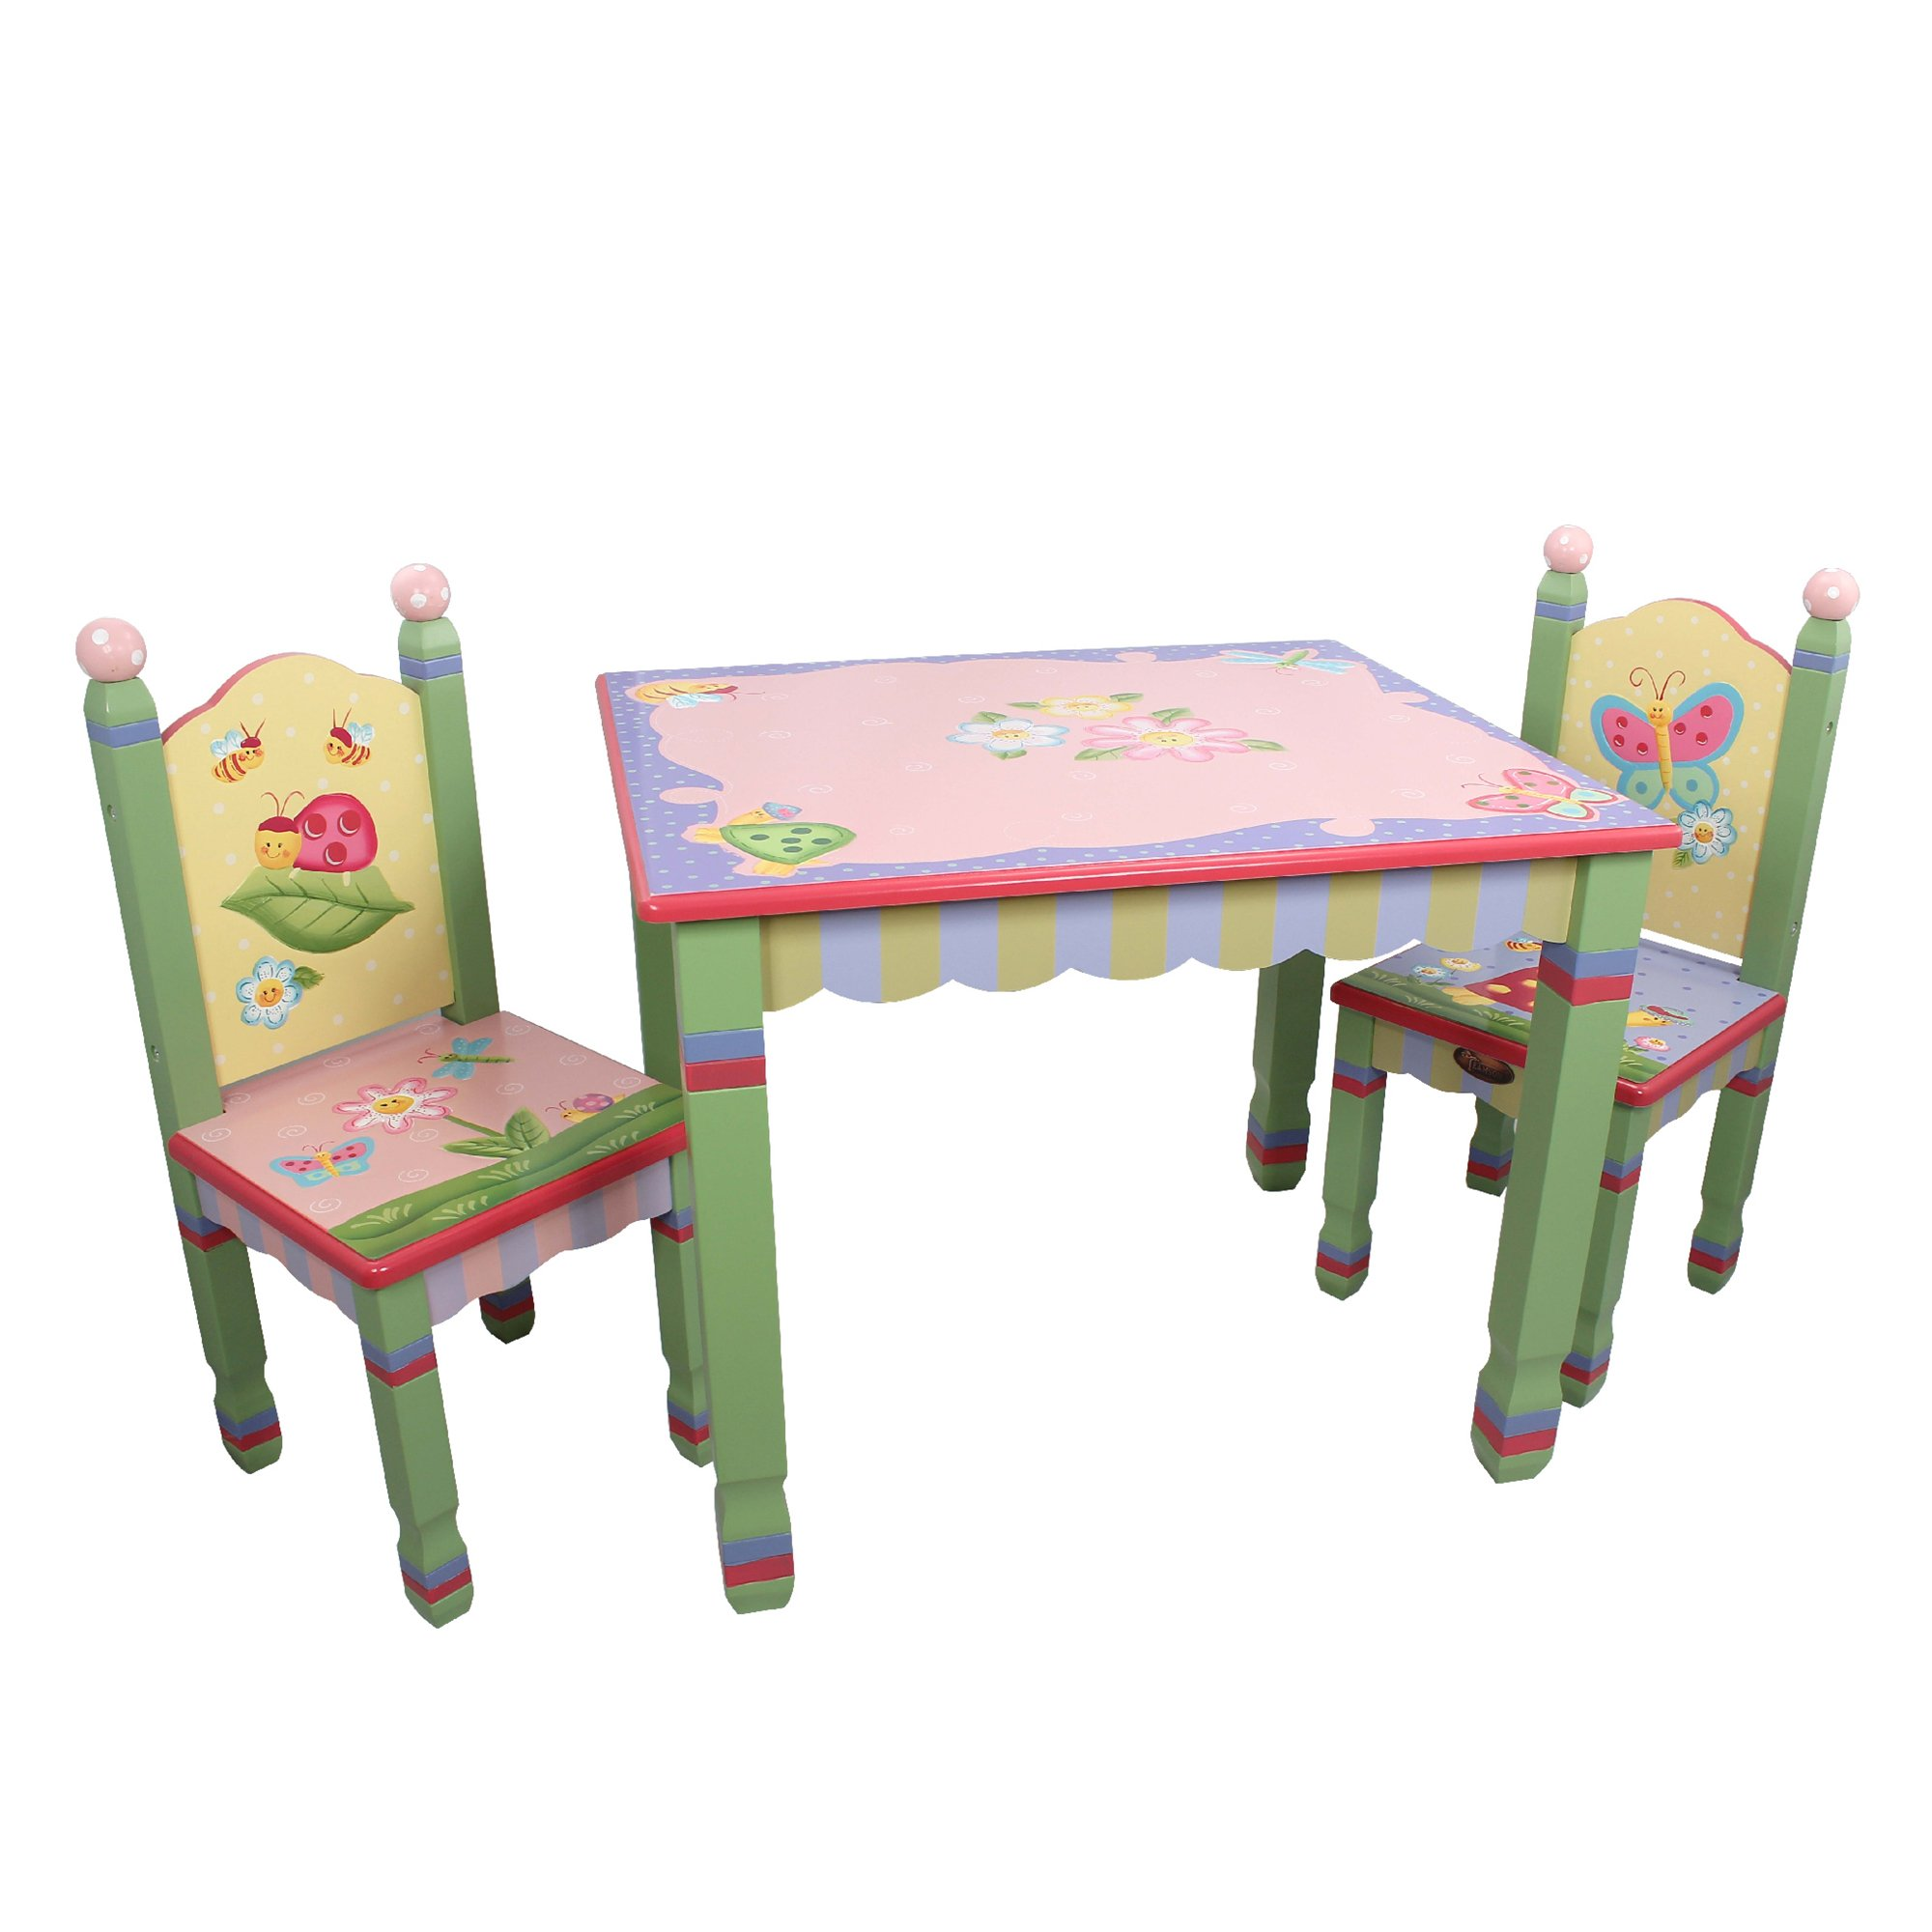 Fantasy Fields - Magic Garden Thematic Hand Crafted Kids Wooden Table & 2 Chairs Set Imagination Inspiring Hand Crafted & Hand Painted Details Non-Toxic, Lead Free Water-Based Paint by Fantasy Fields